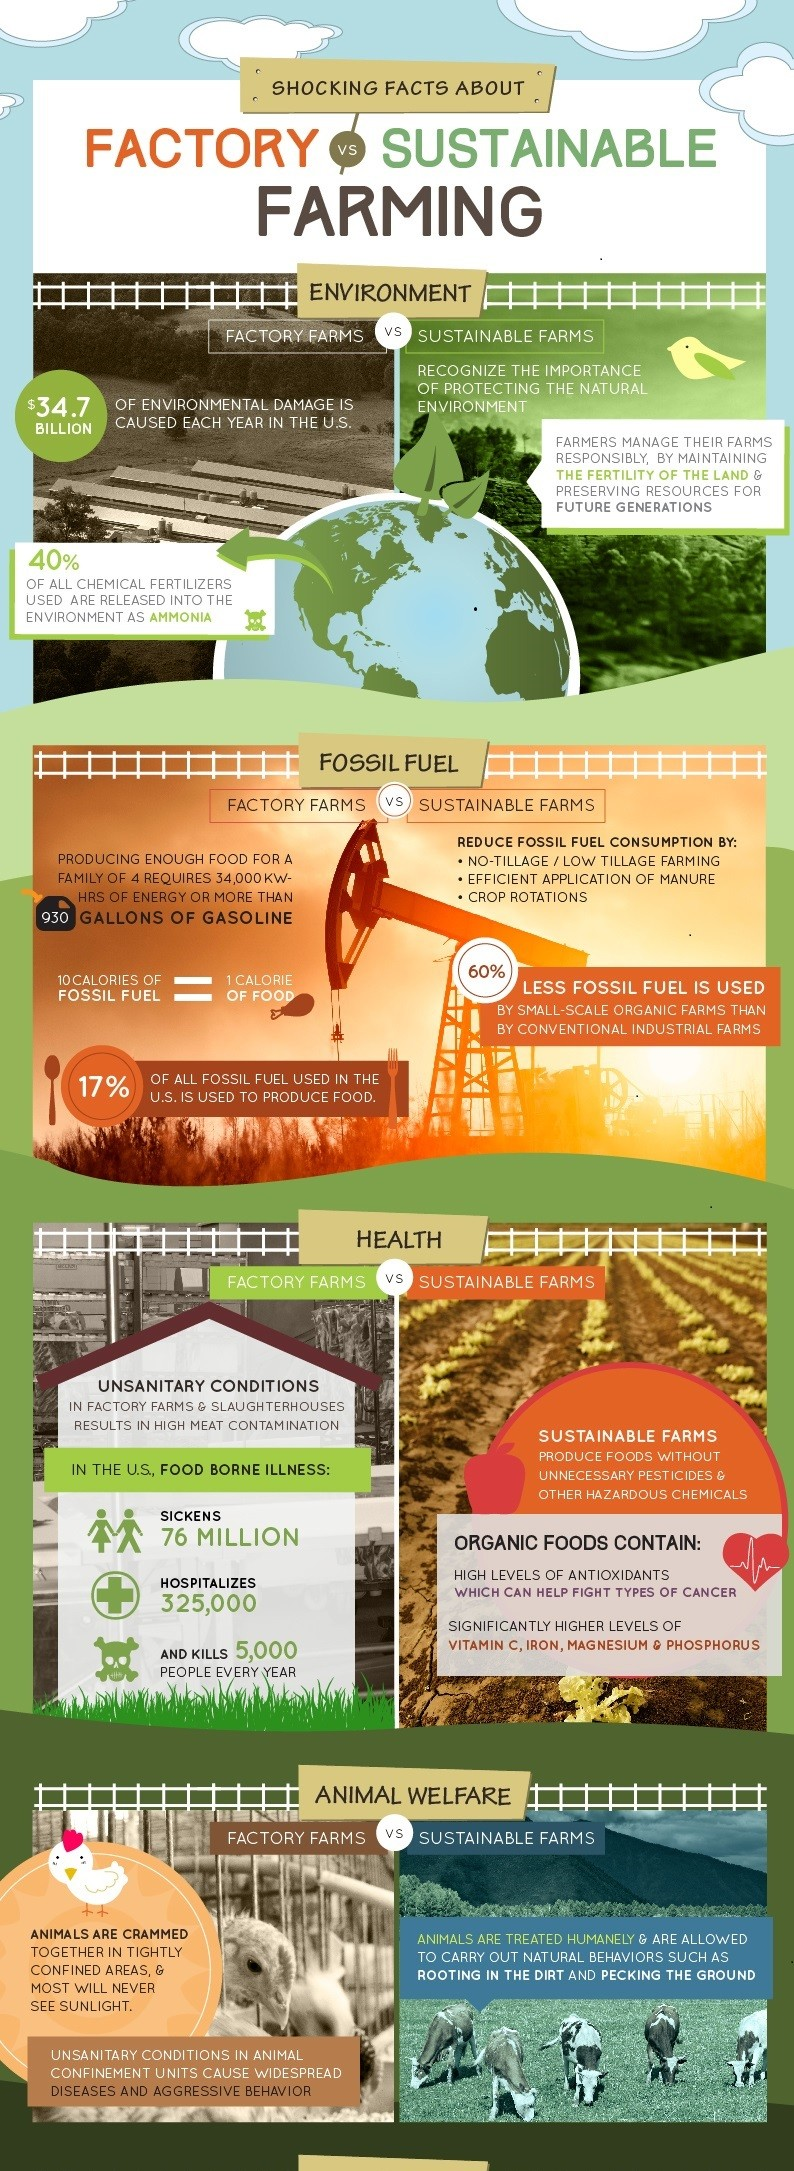 facts about factory farming [infographic]